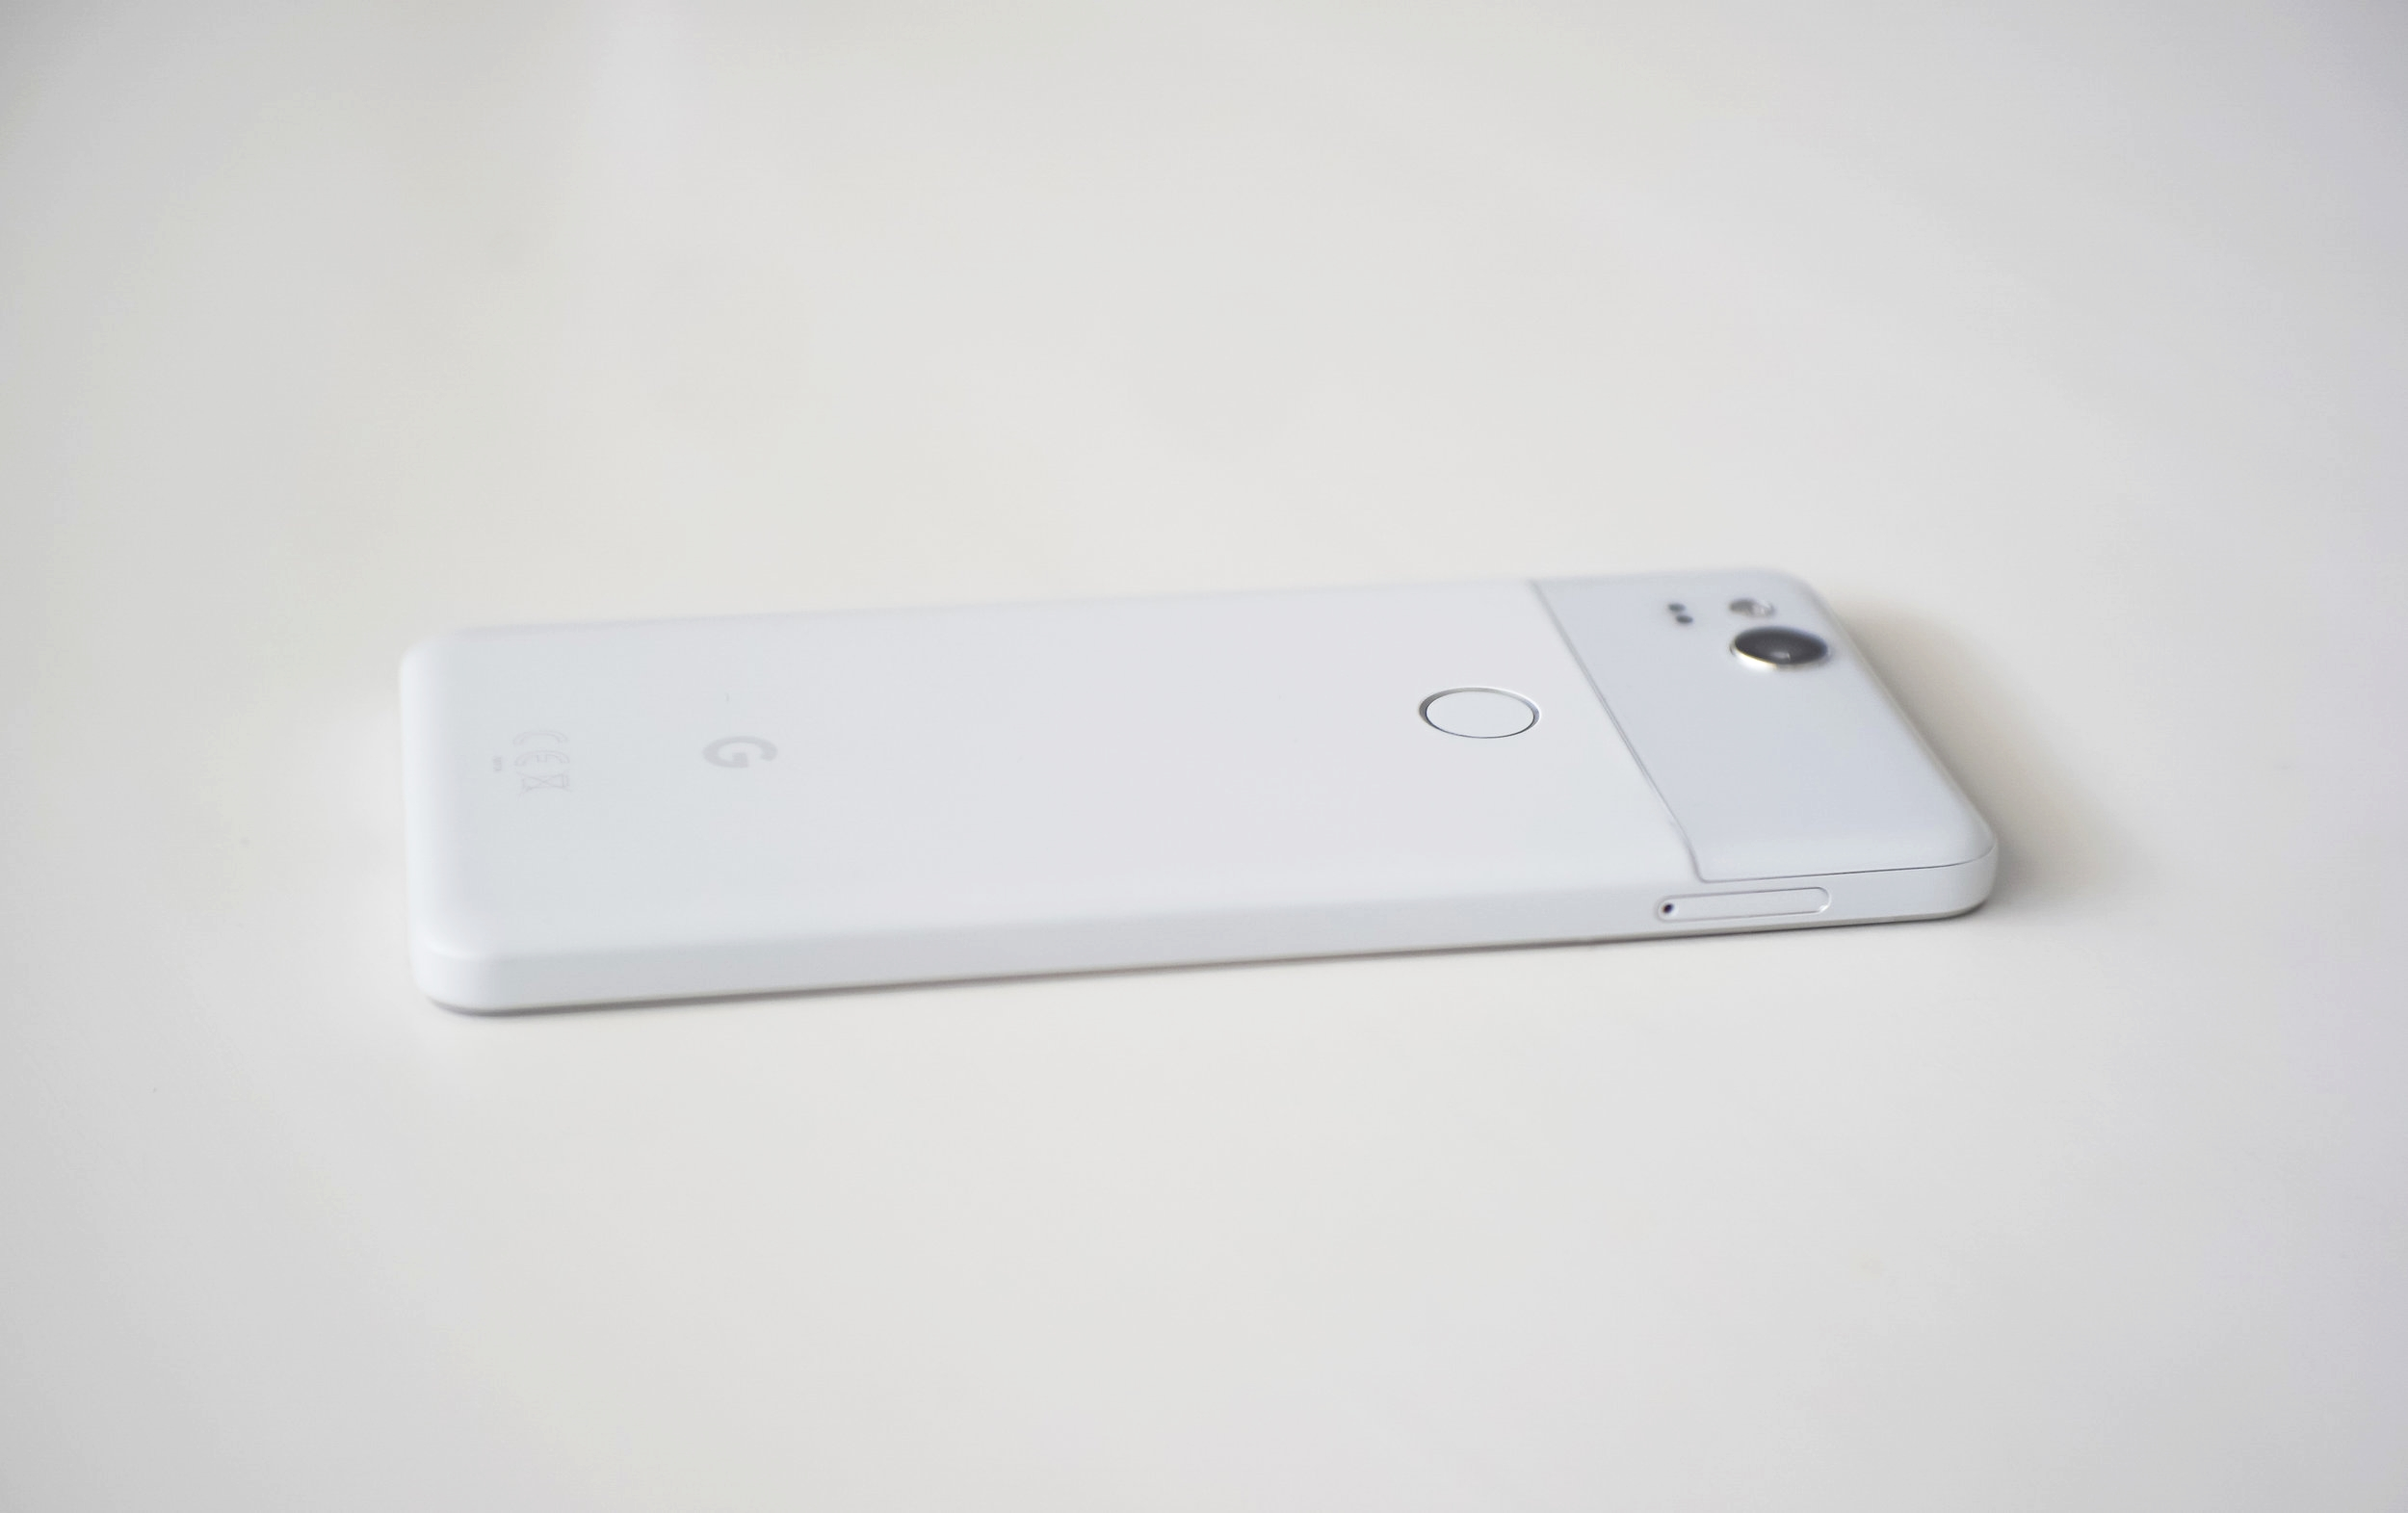 To us, the Google Pixel 2 is the best smartphone experience you can get.